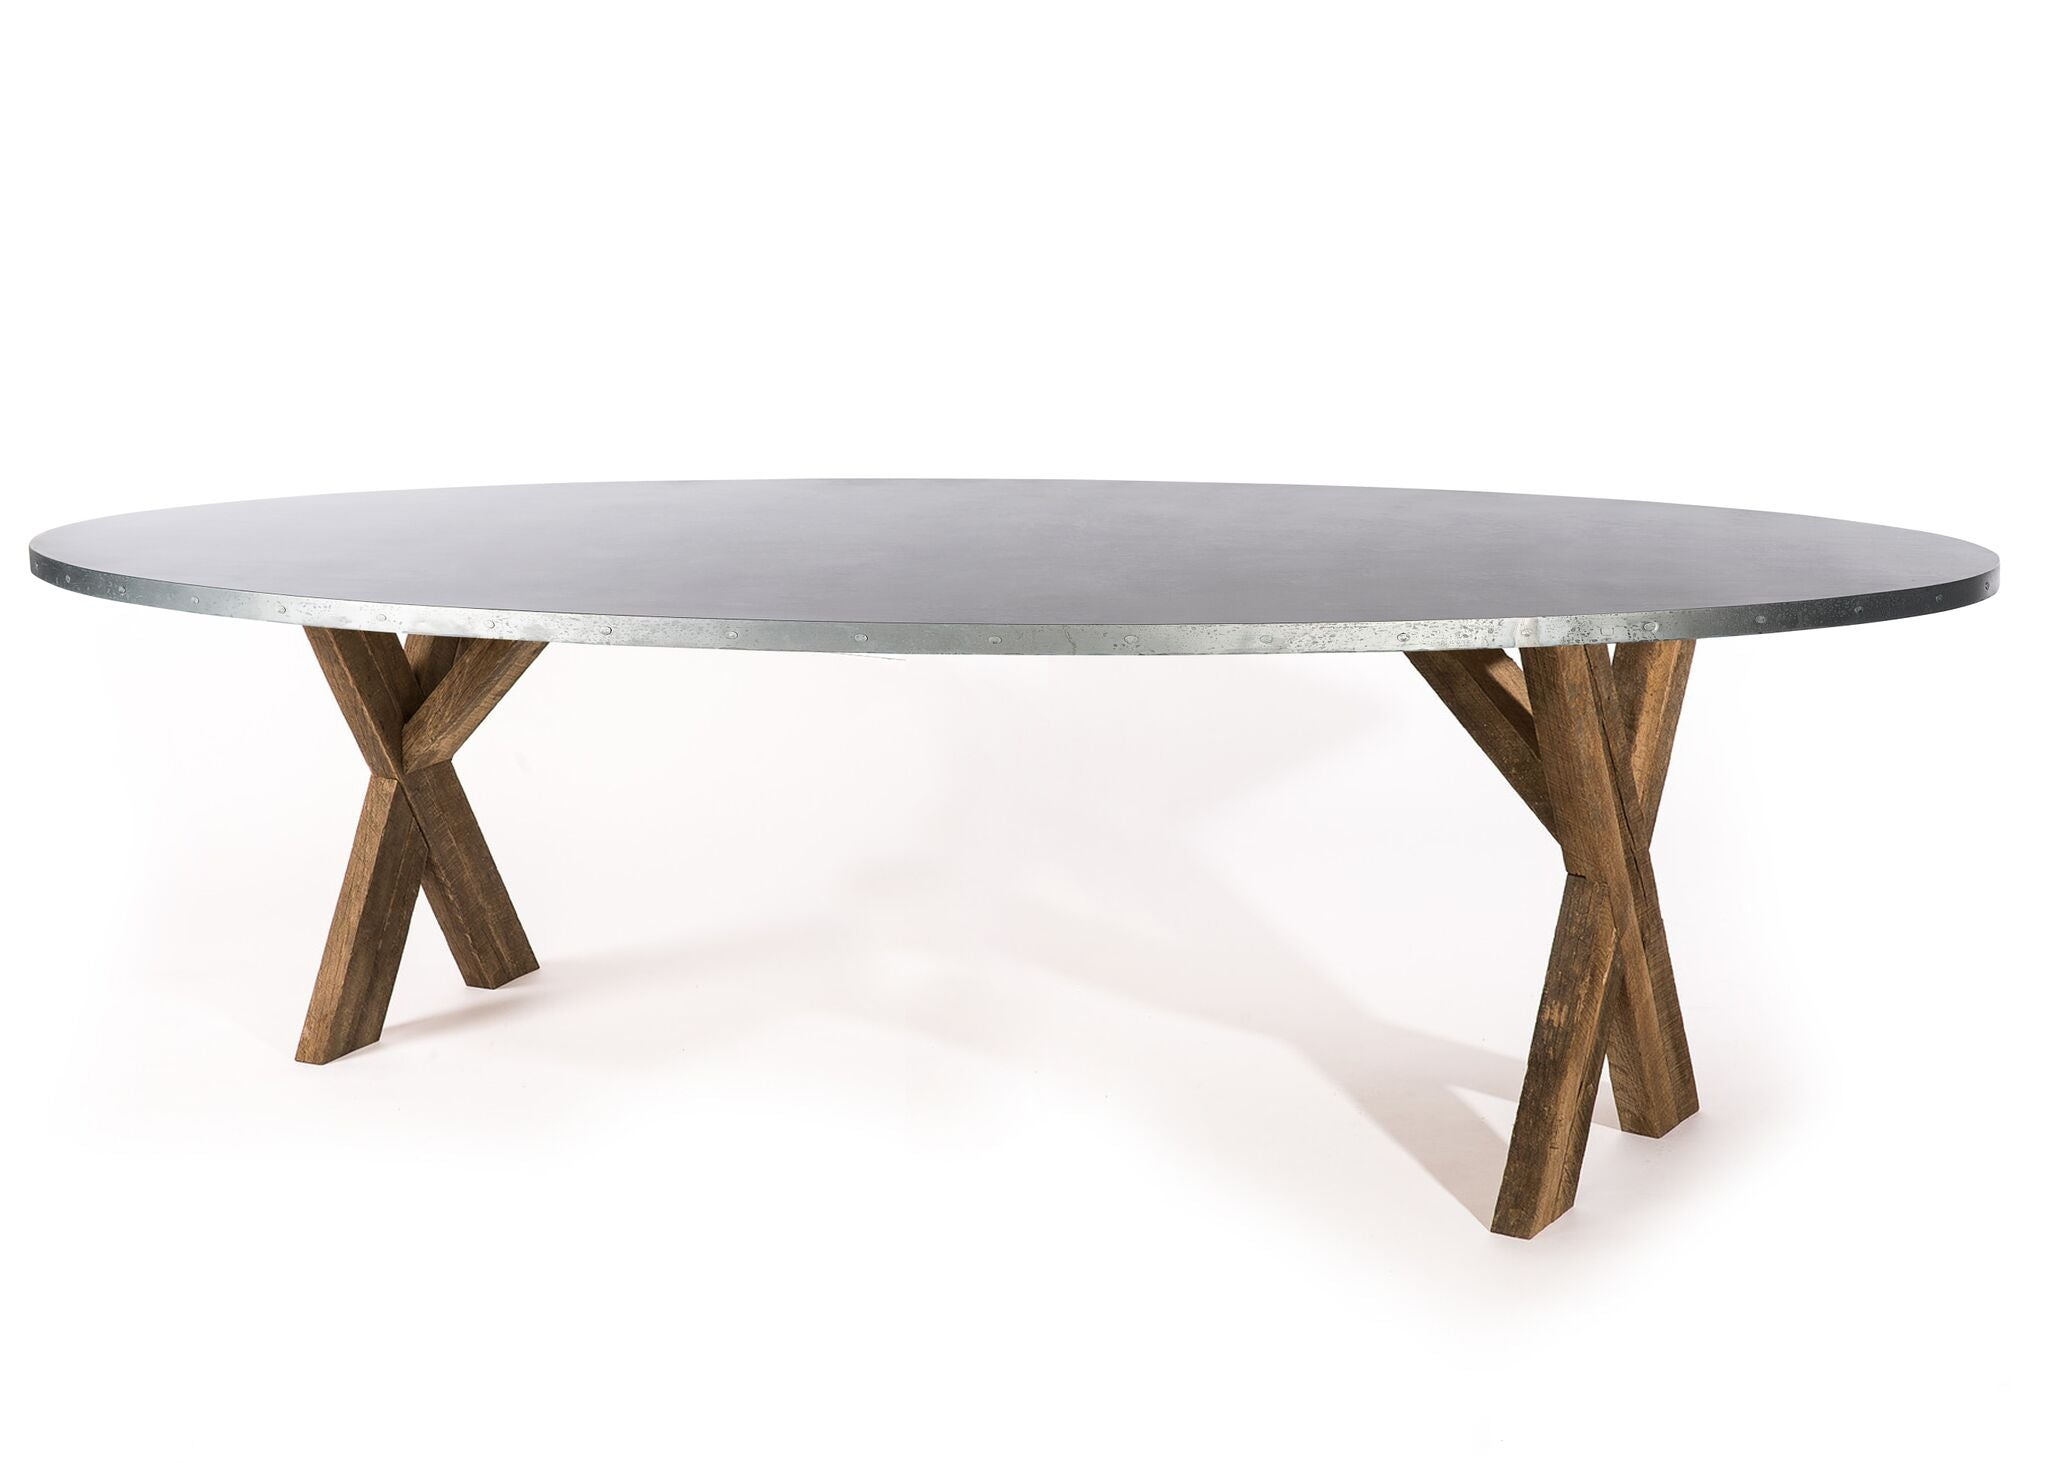 "Zinc Oval Tables | X Base Trestle Table | CLASSIC | White on Poplar | CUSTOM SIZE L 120 W 43 H 30 | 1.5"" Standard 